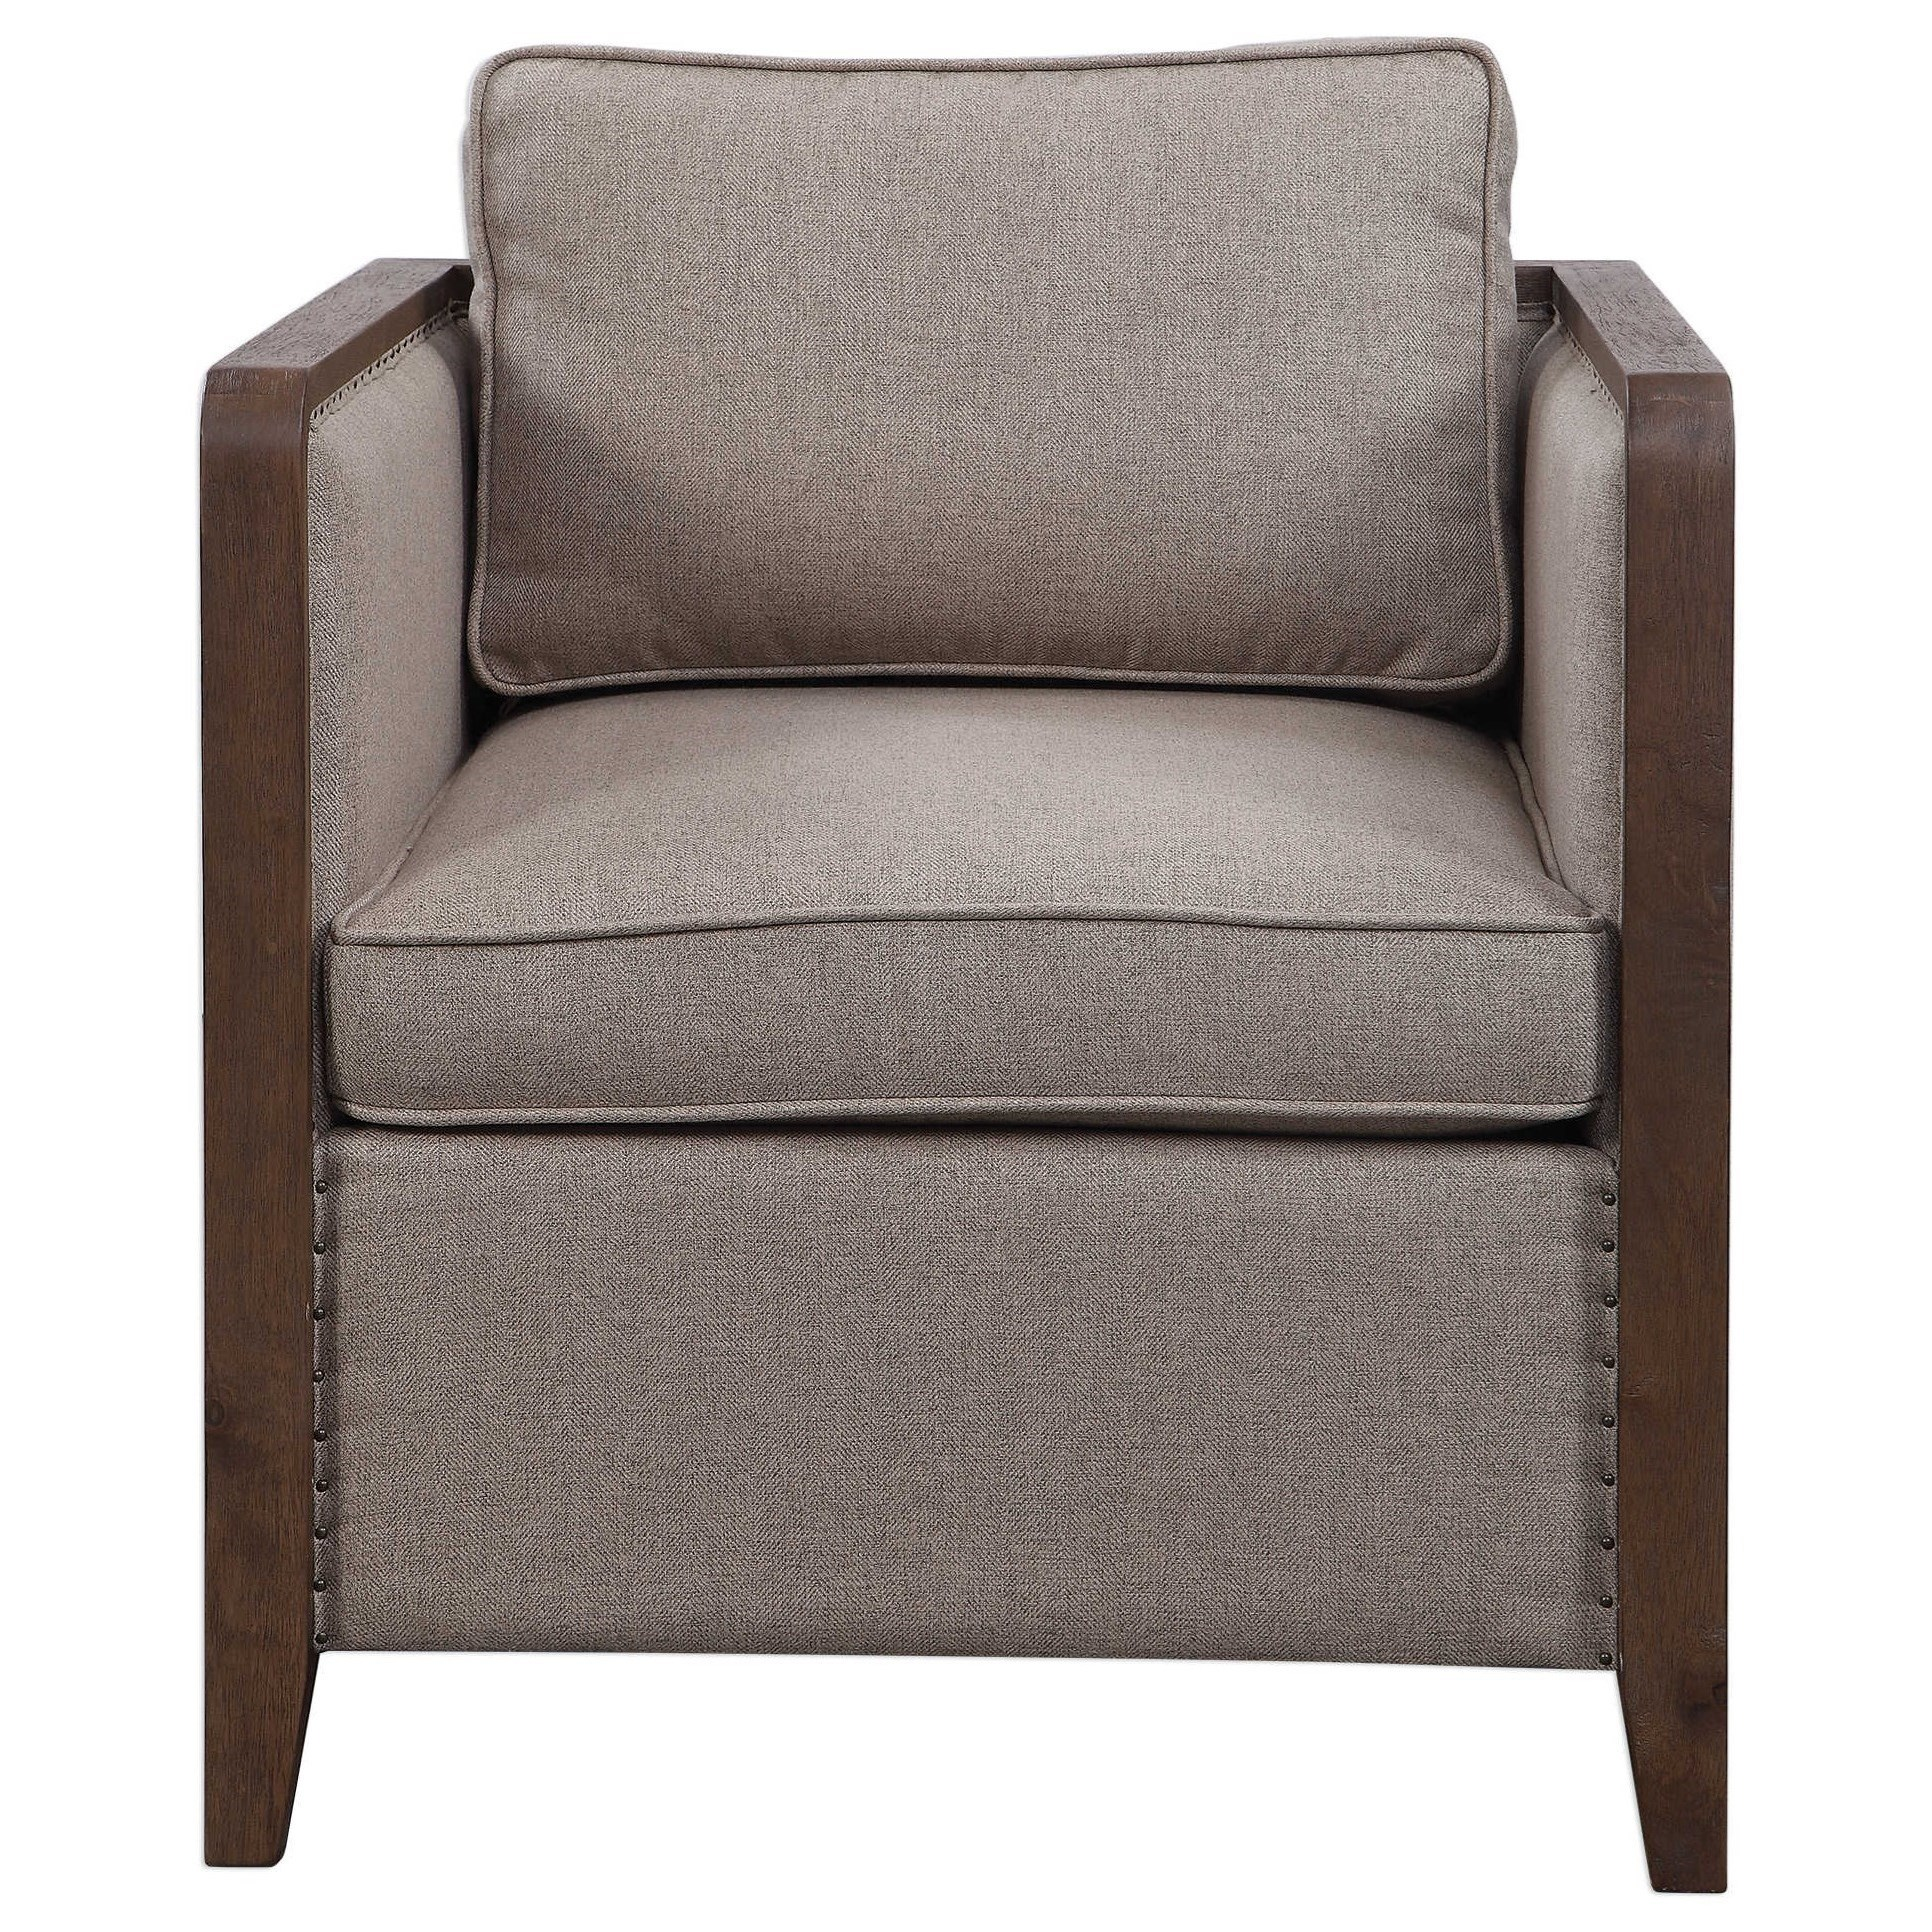 Accent Furniture - Accent Chairs Ennis Contemporary Accent Chair by Uttermost at Furniture Superstore - Rochester, MN